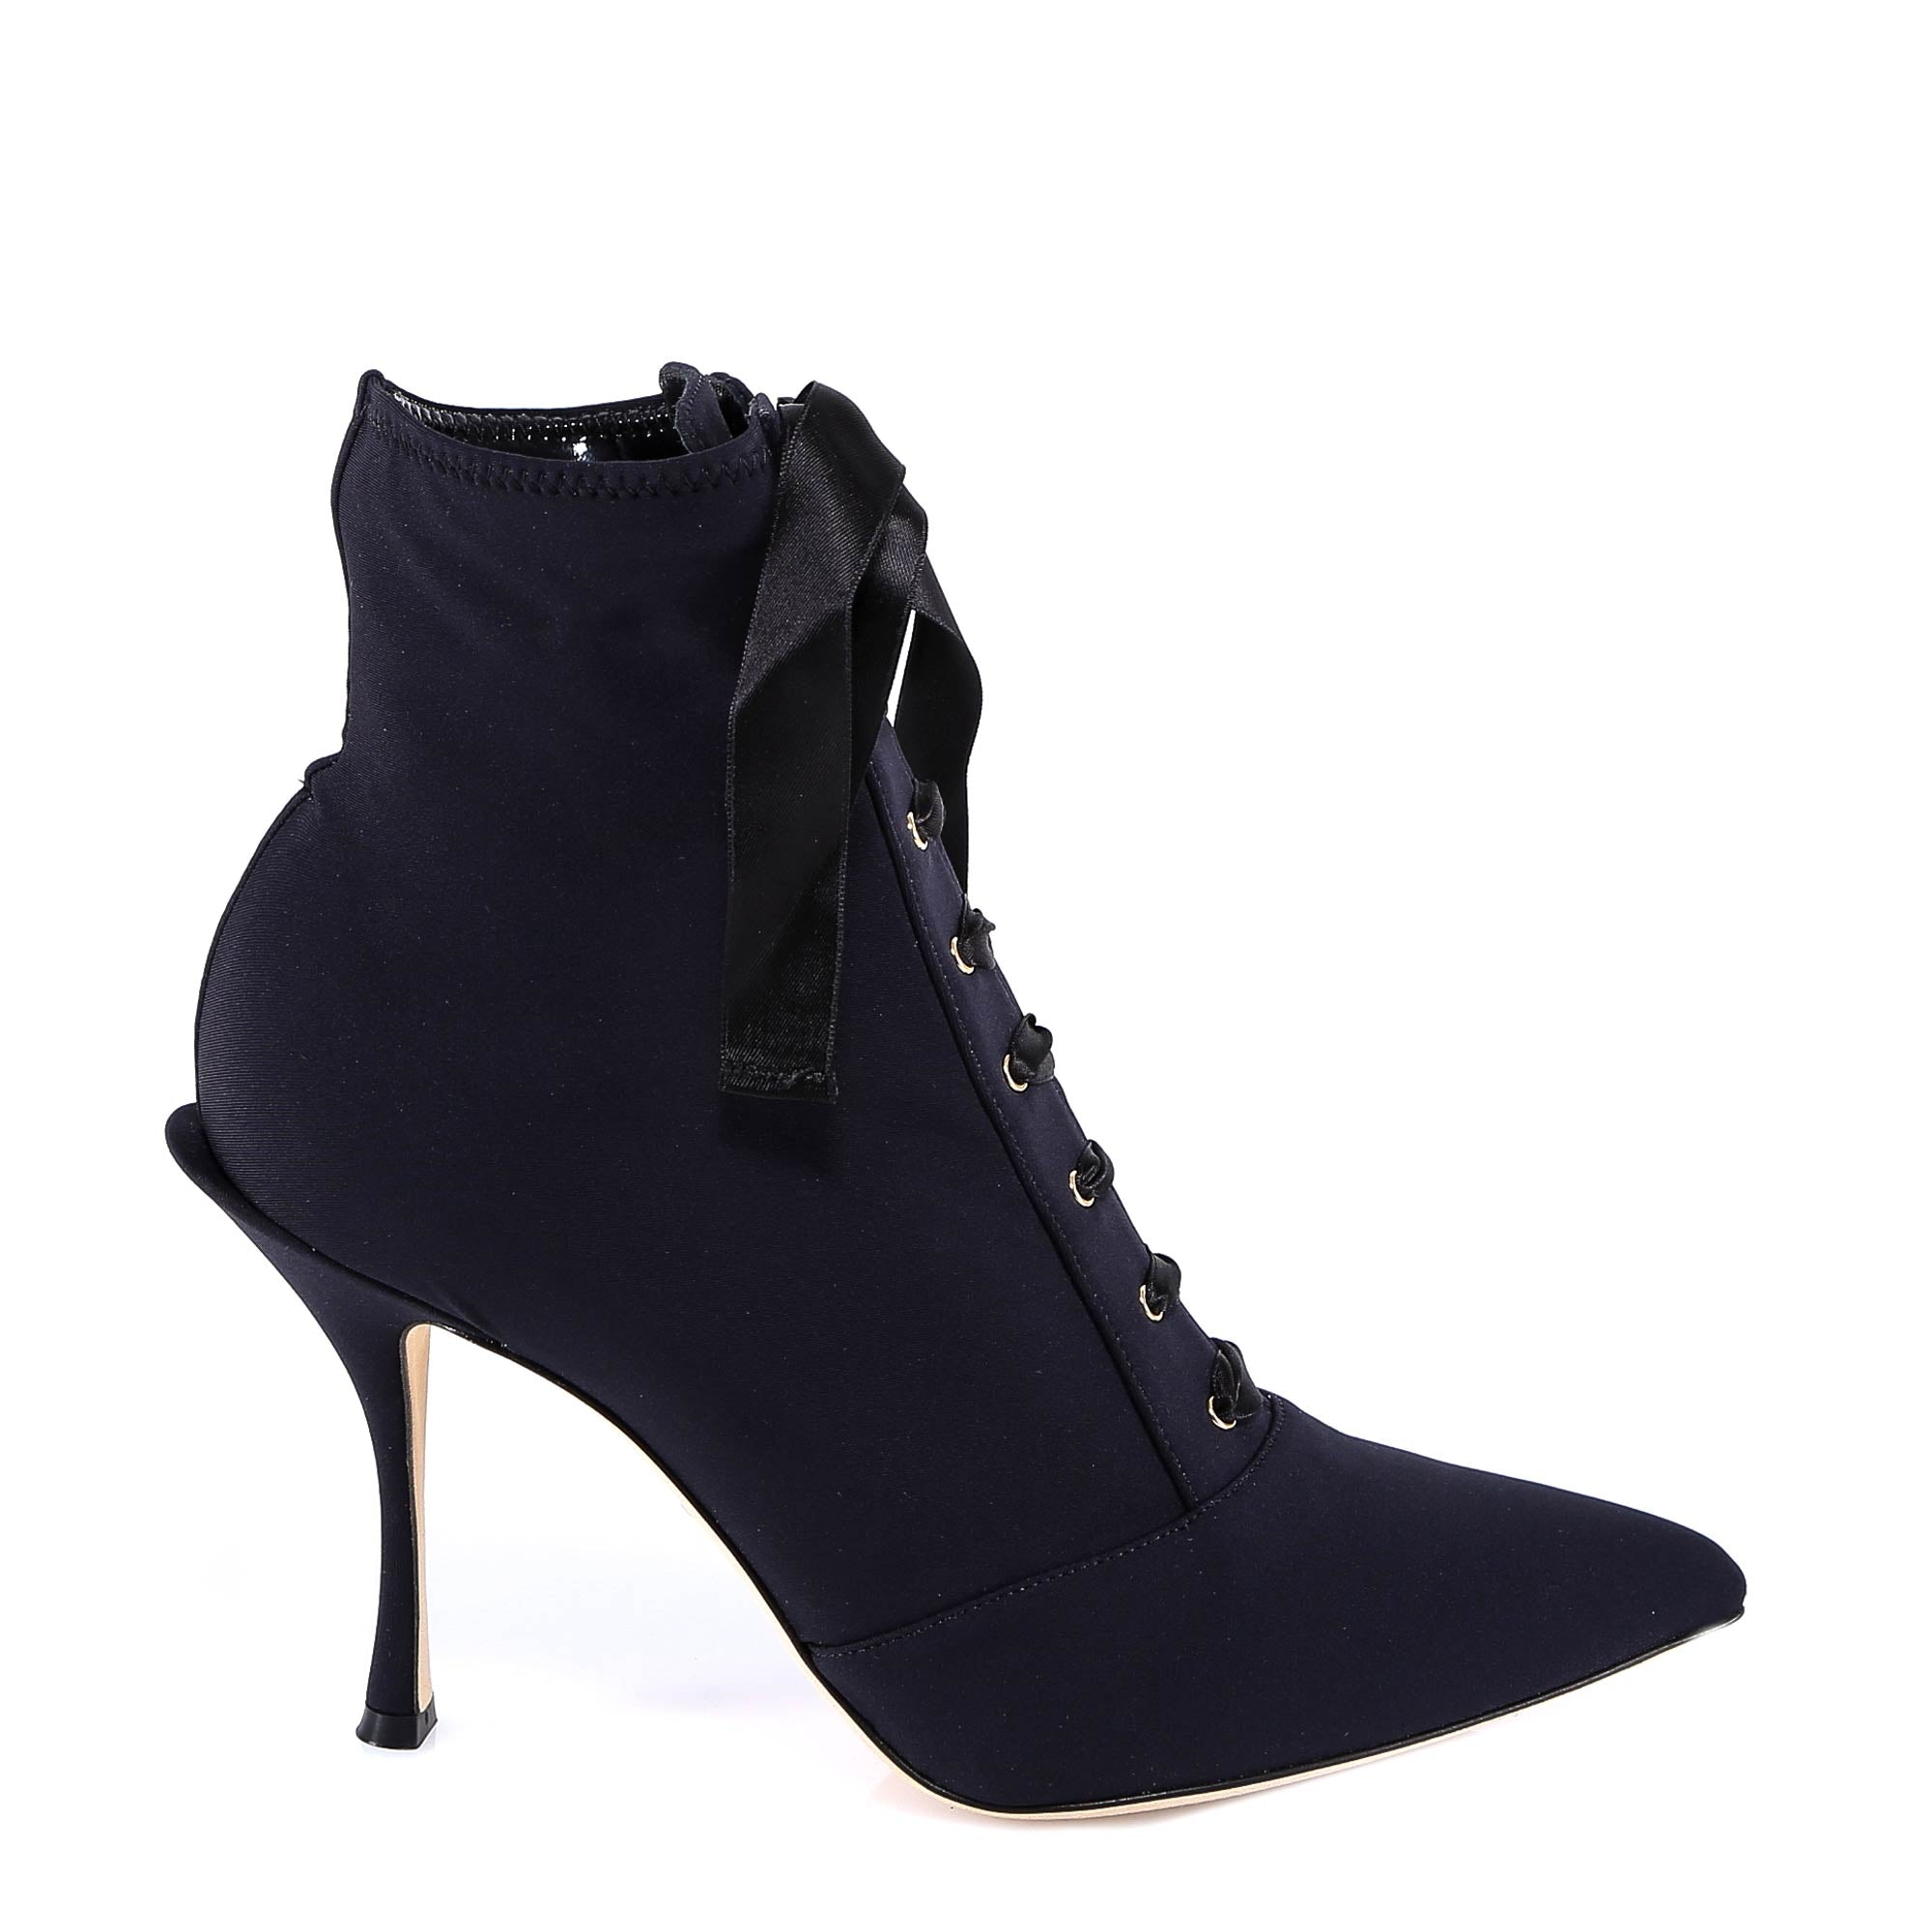 Lori Stretch Jersey Ankle Boots in Black